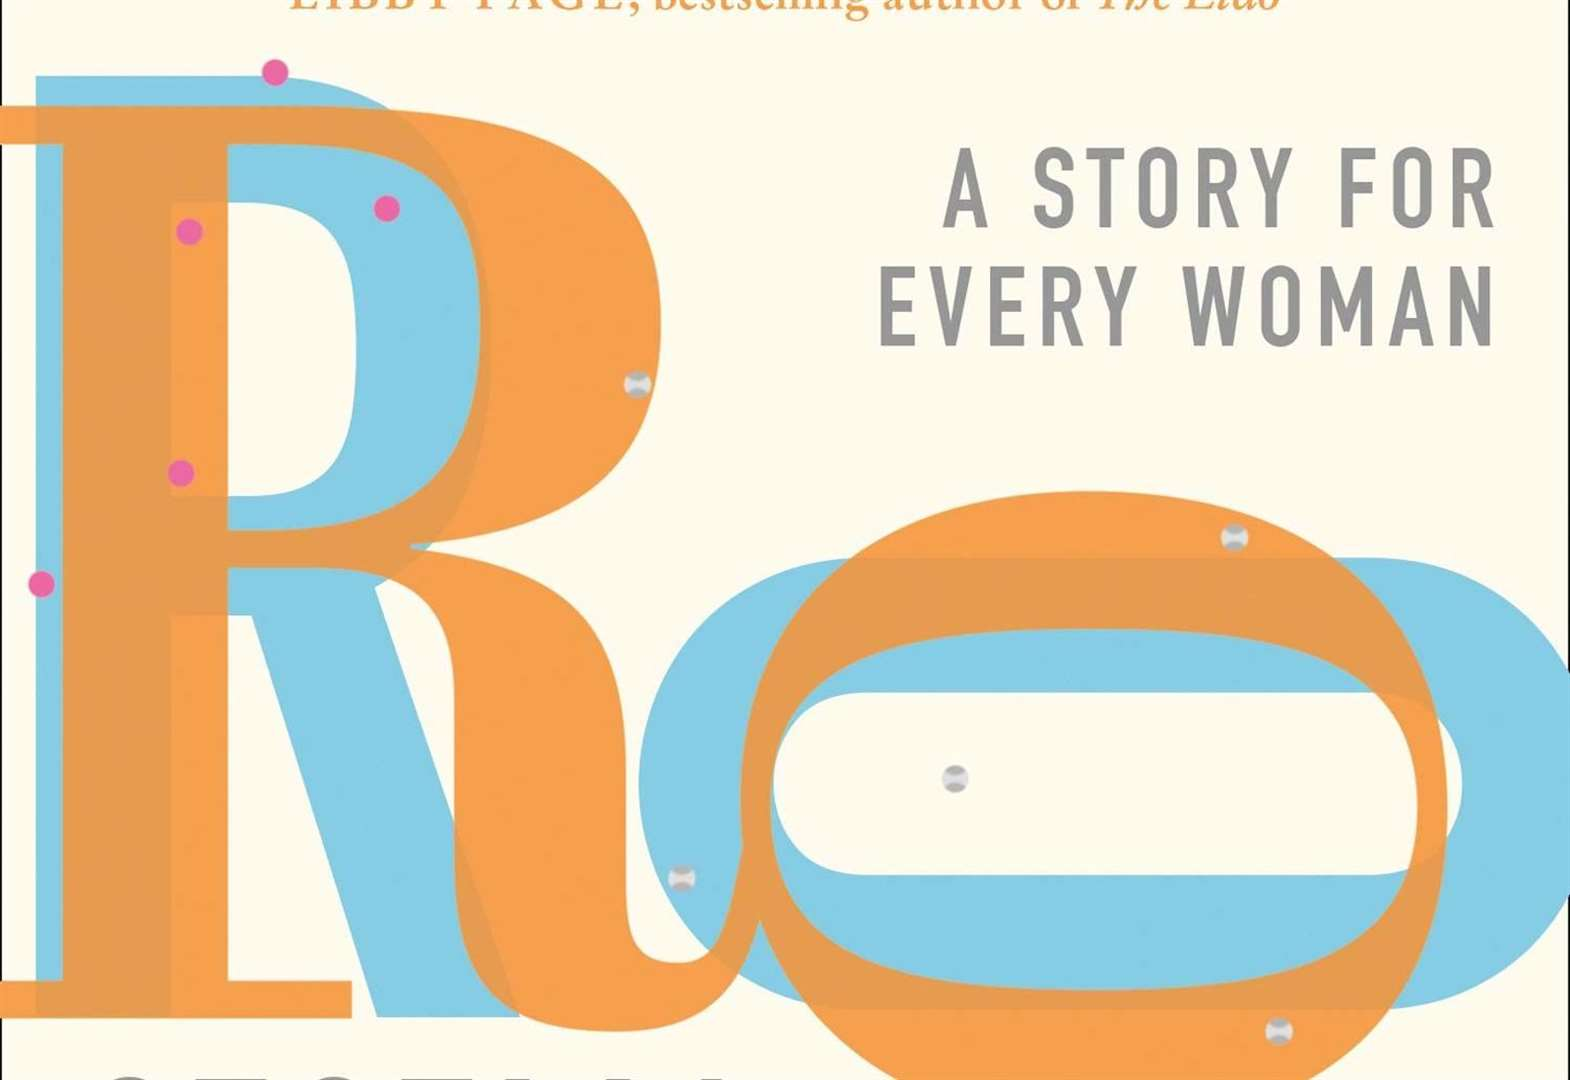 BOOK OF THE WEEK: Roar by Cecelia Ahern